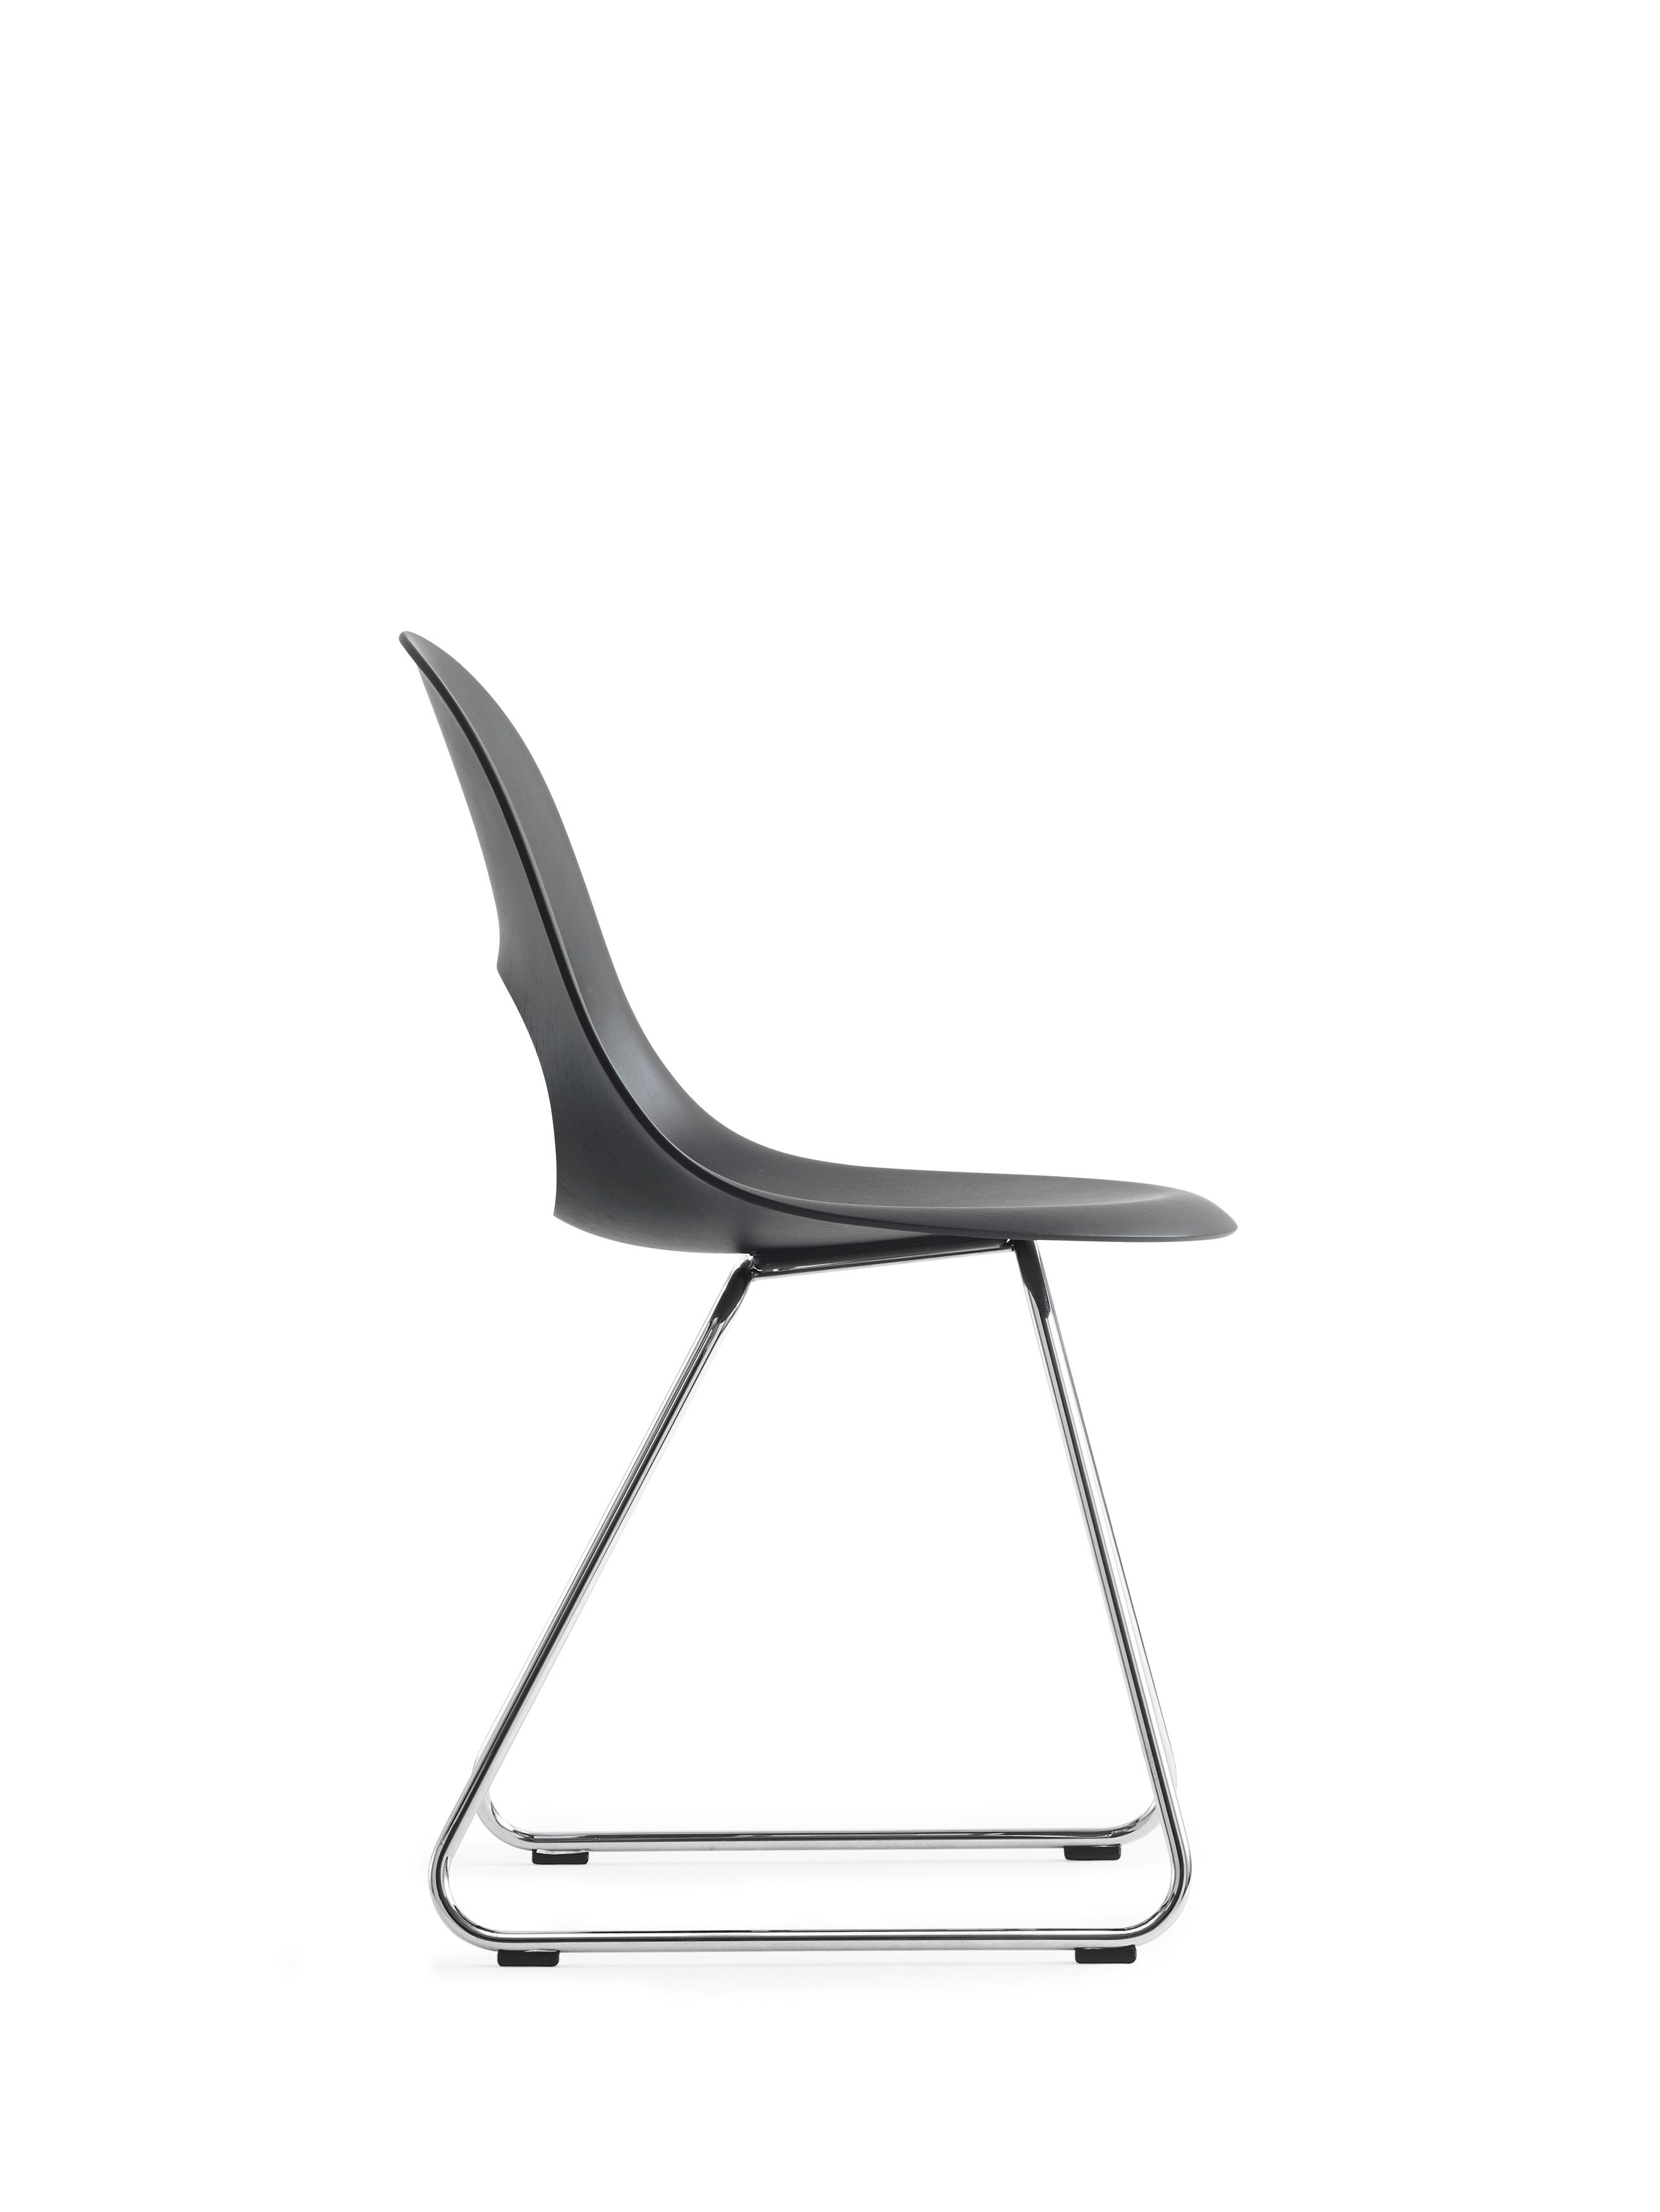 This SayO MiniLux Chair full painted black with metal legs in profile. Find out more at www.sayo.dk.